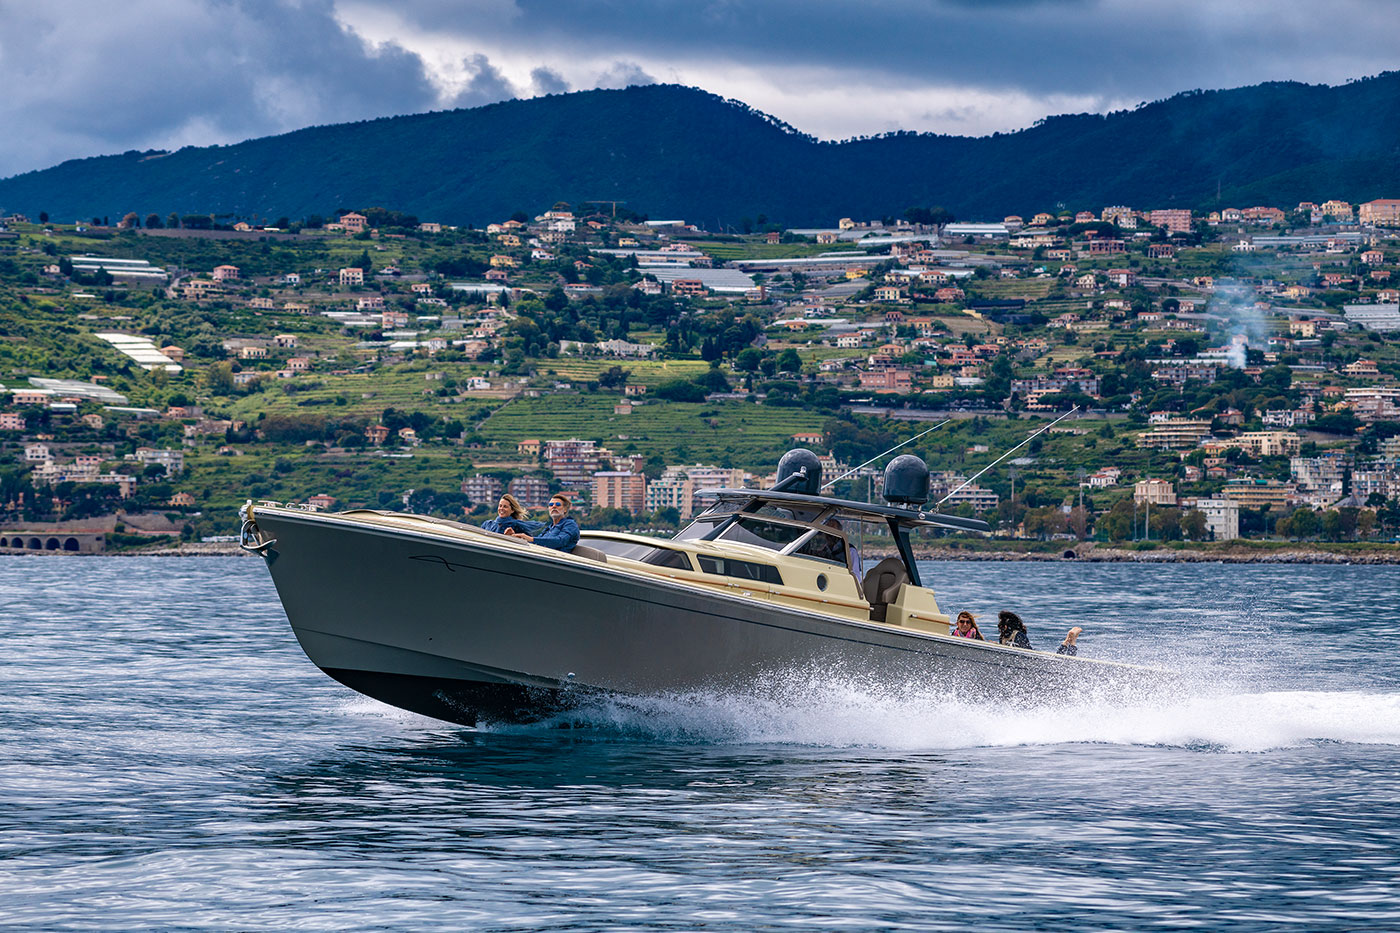 Photo of Runabout 43 by the coast with Italian town in the background